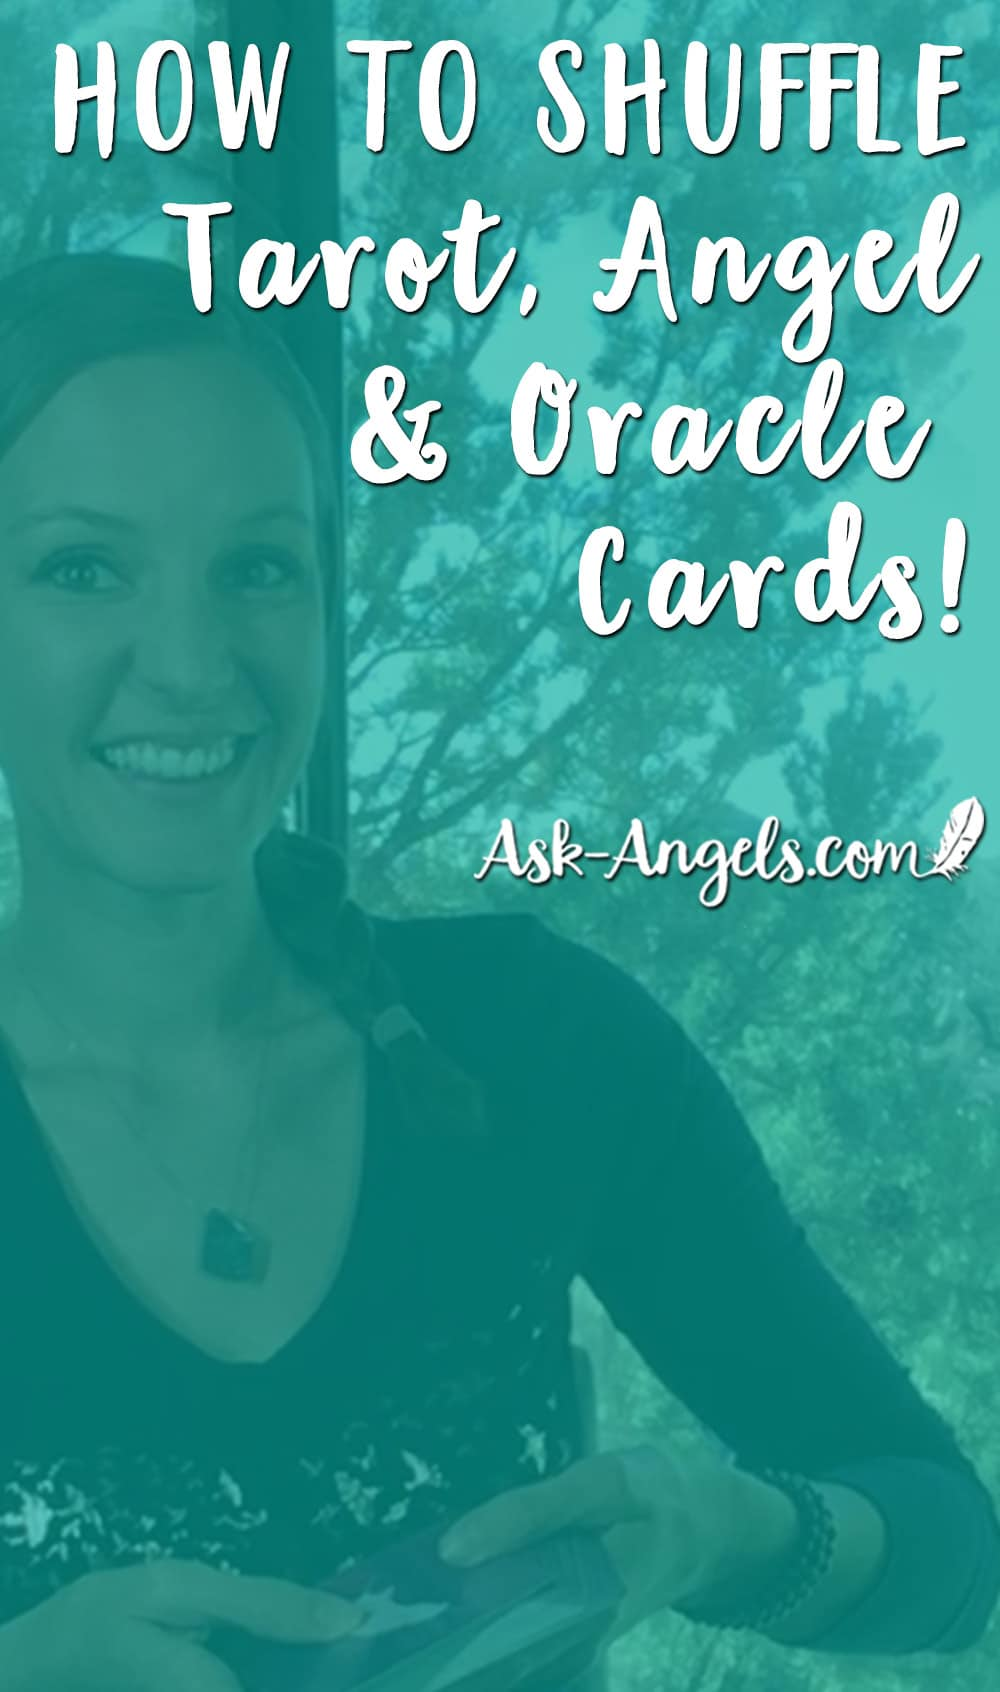 Learn how to Shuffle Tarot Cards, Angel Cards and Oracle Cards! #oraclecards #tarot